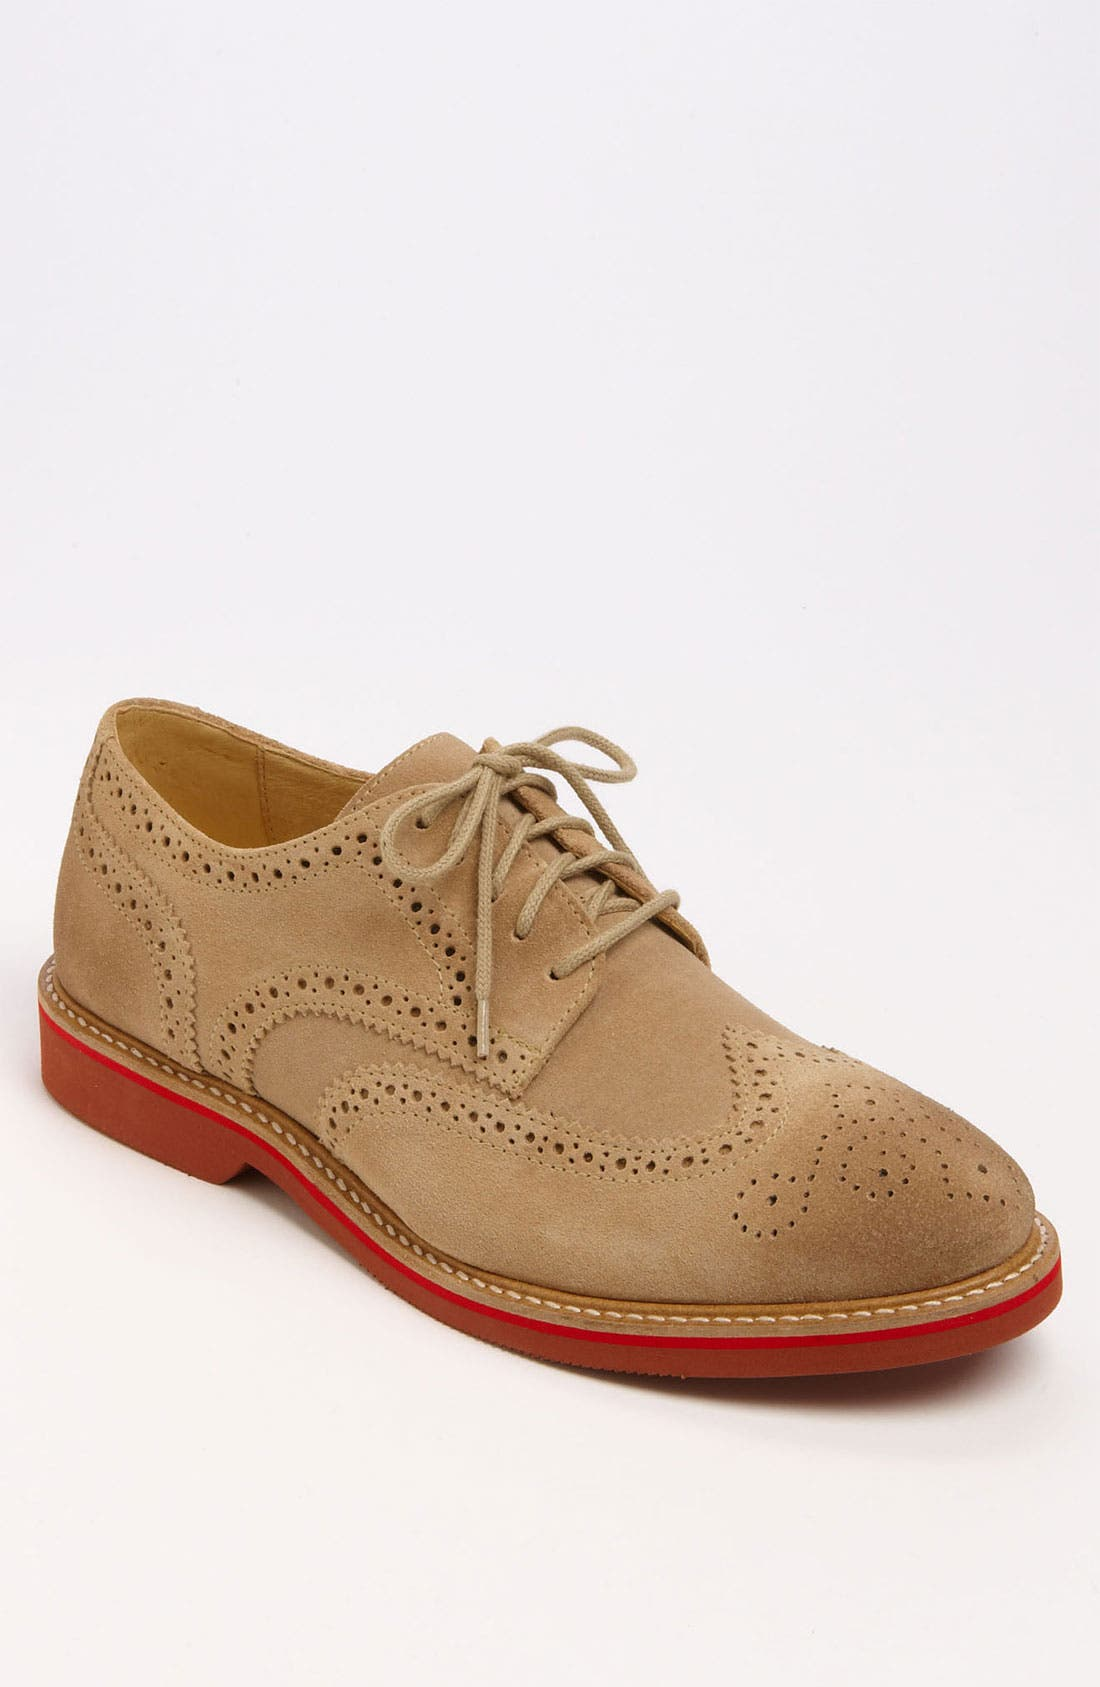 Alternate Image 1 Selected - 1901 'Wing It' Suede Oxford